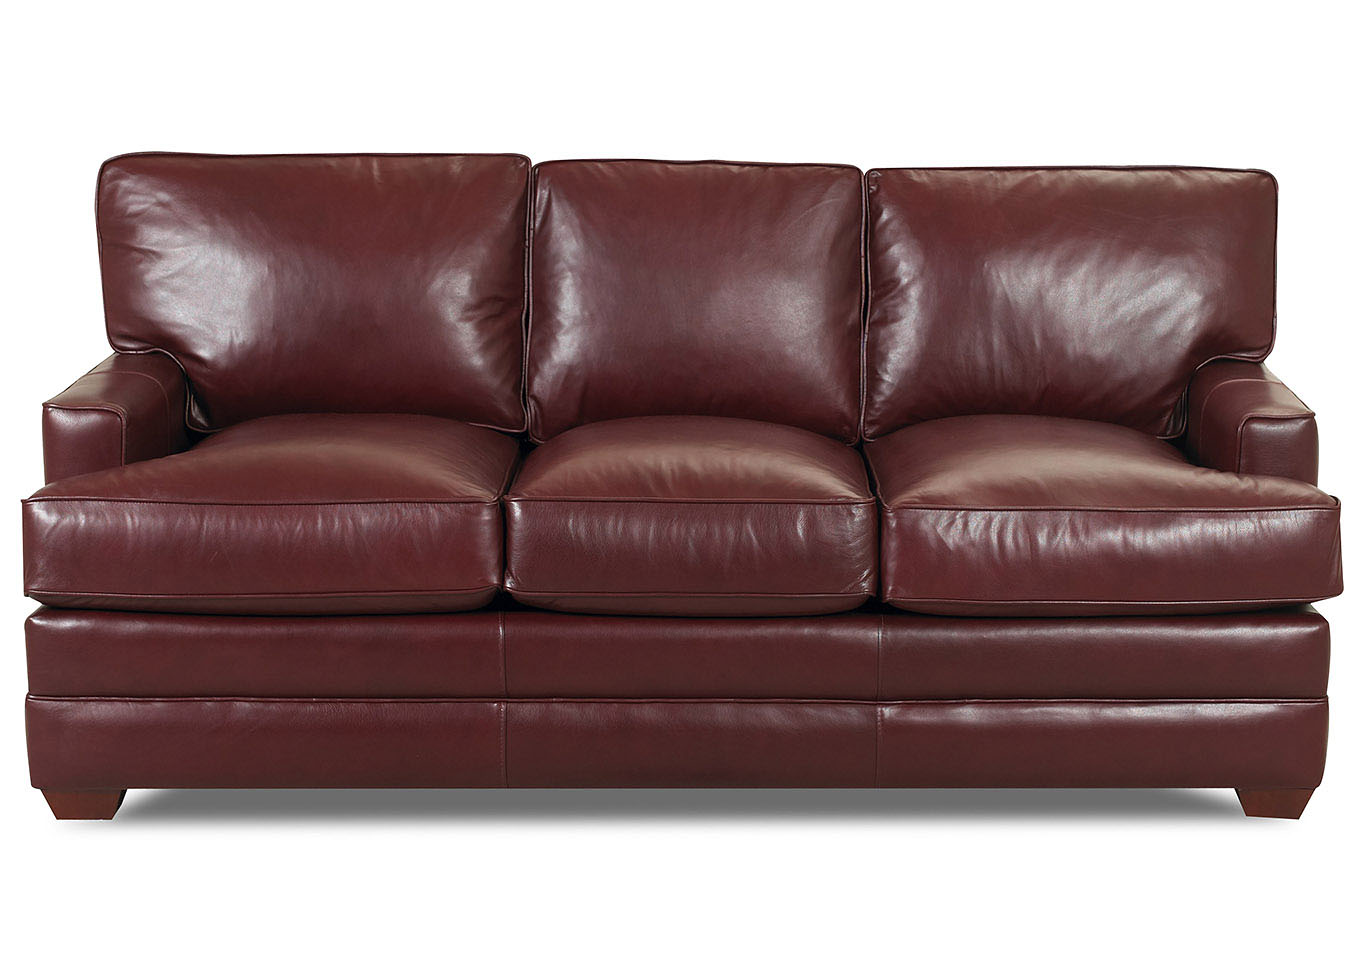 Pantego Burgundy Leather Stationary Sofa,Klaussner Home Furnishings